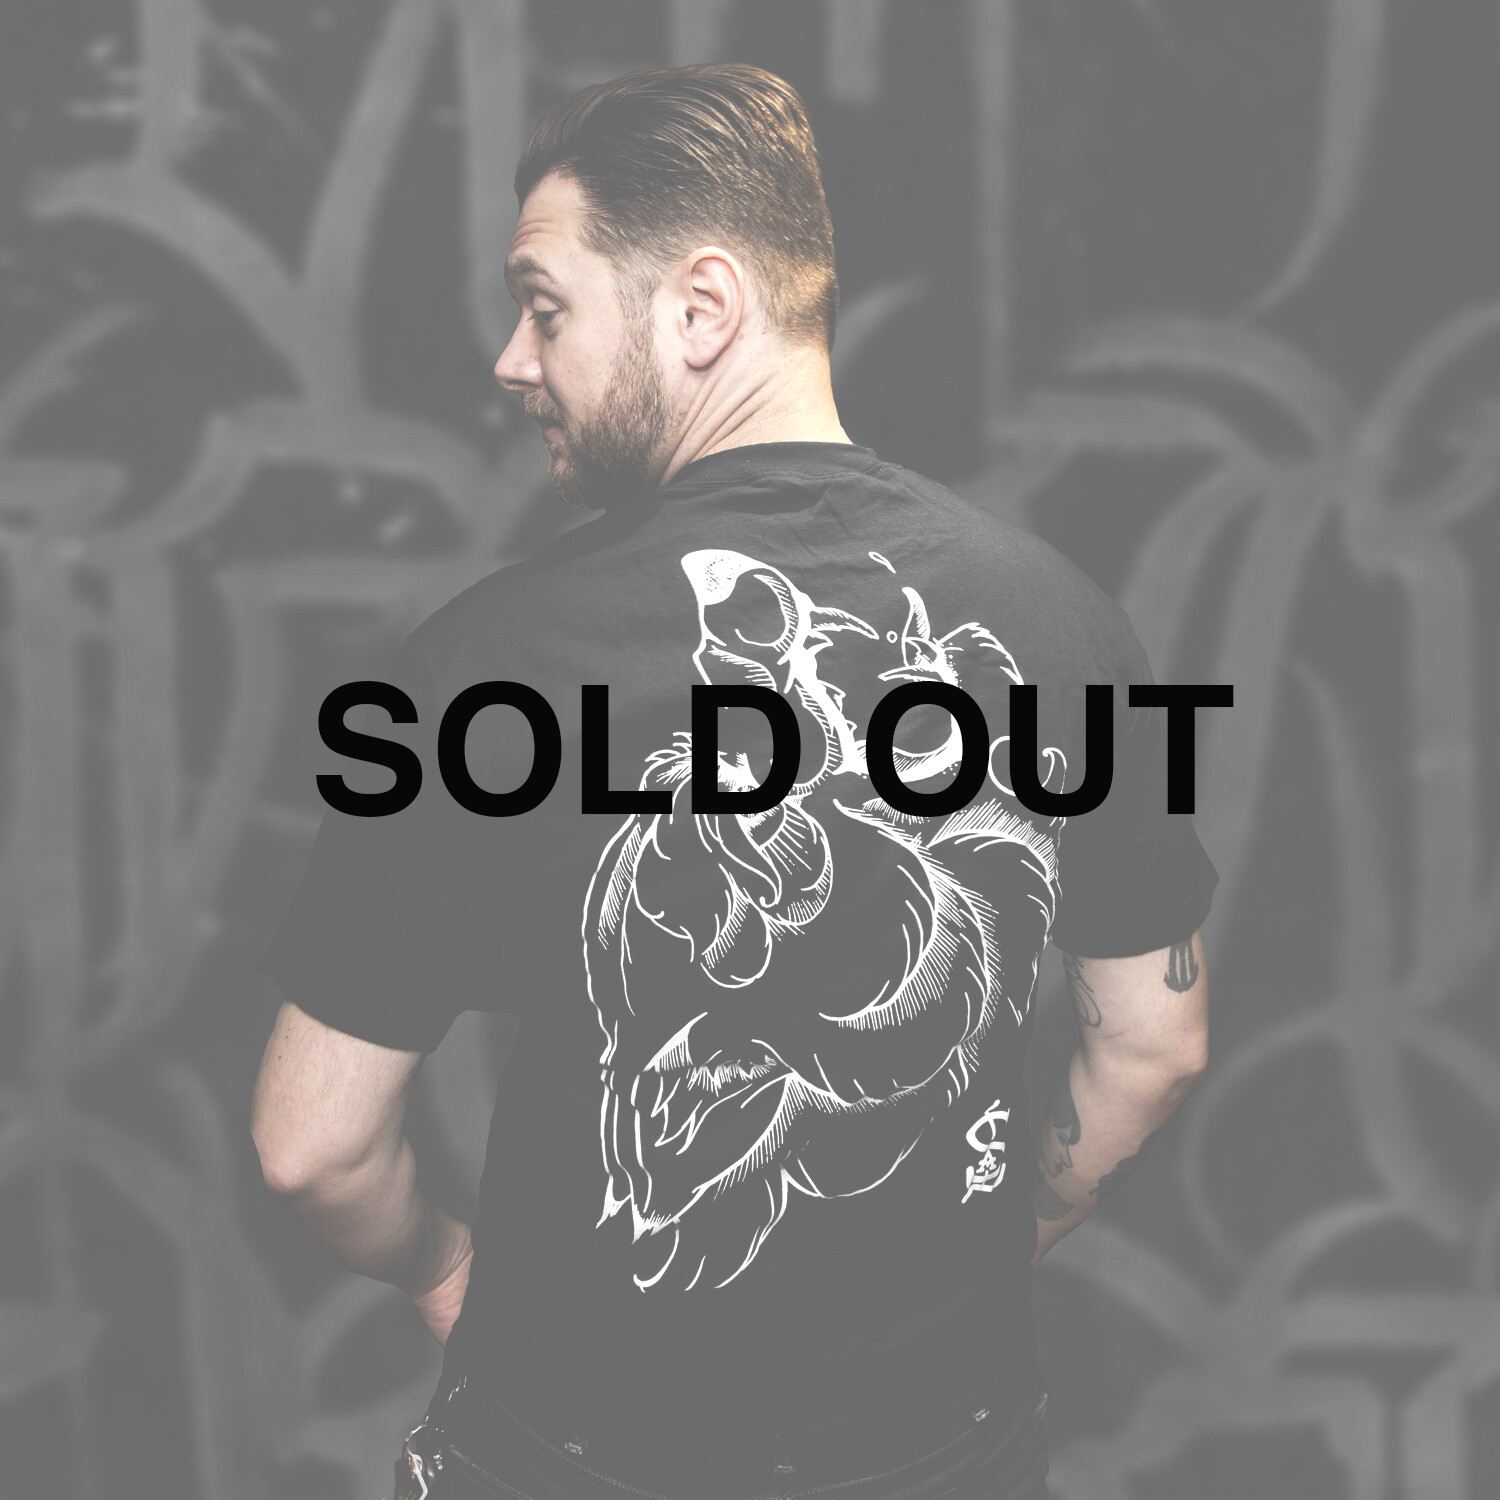 AWNS Signature Series Shirt by Sweet Ass Lew [SOLD OUT]